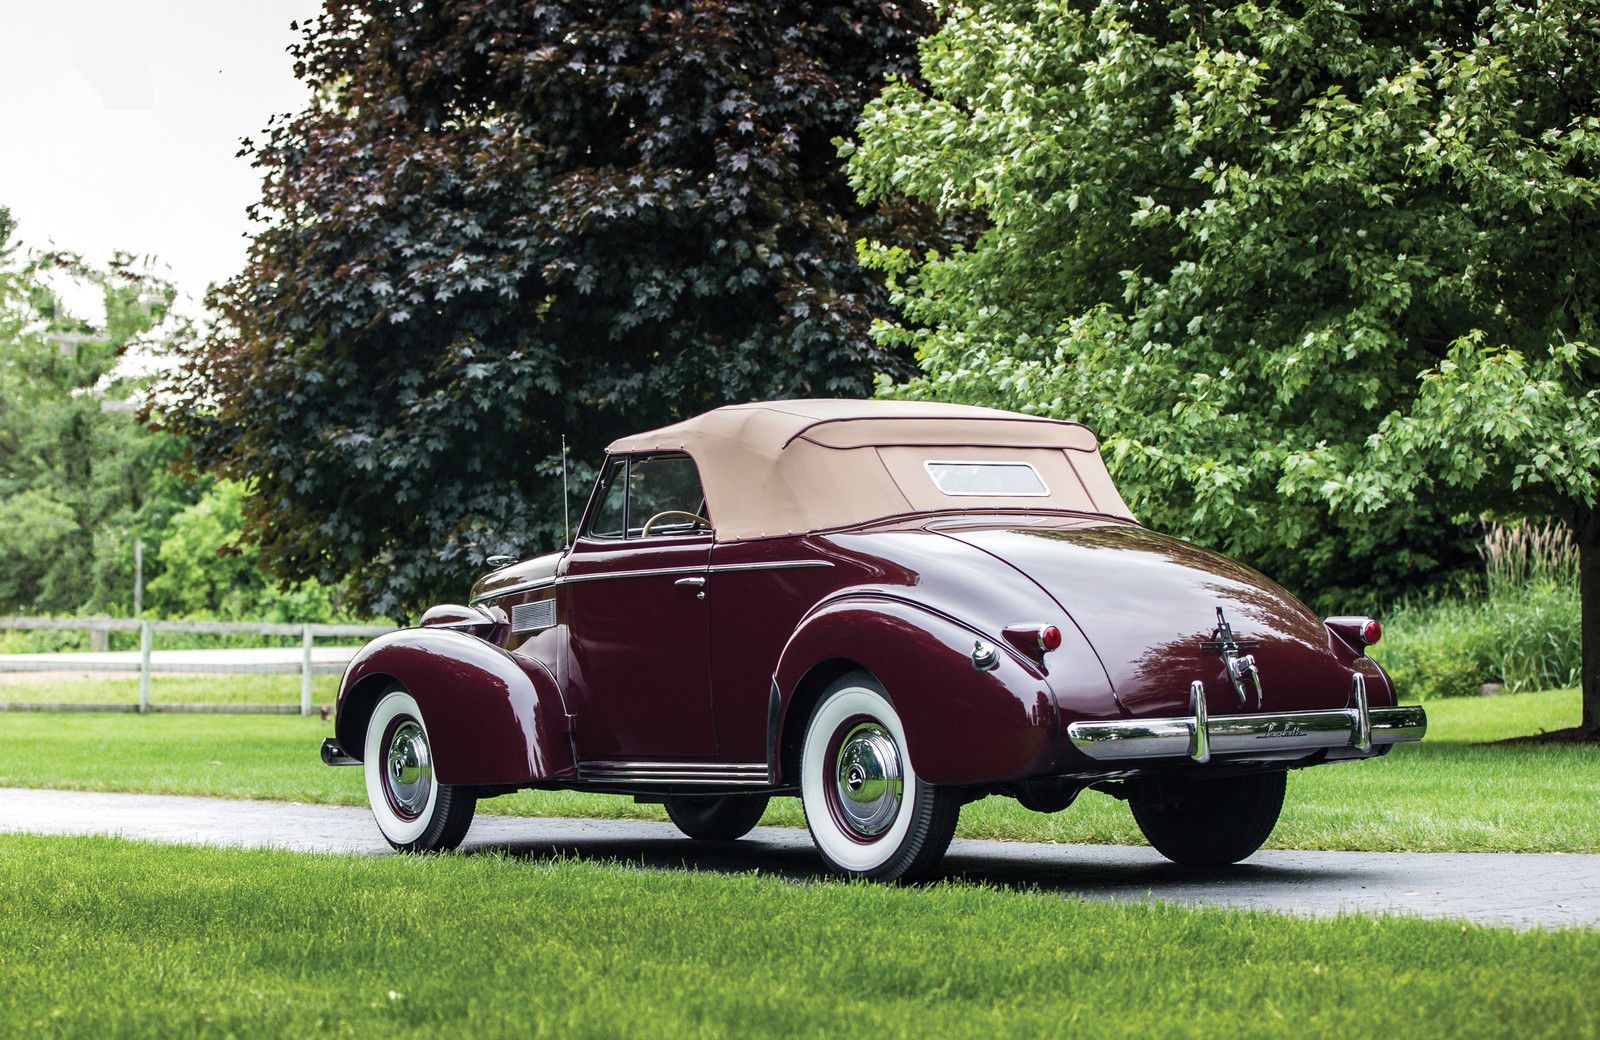 VOITURES DE LEGENDE (1195) : LaSALLE CONVERTIBLE COUPE - 1939